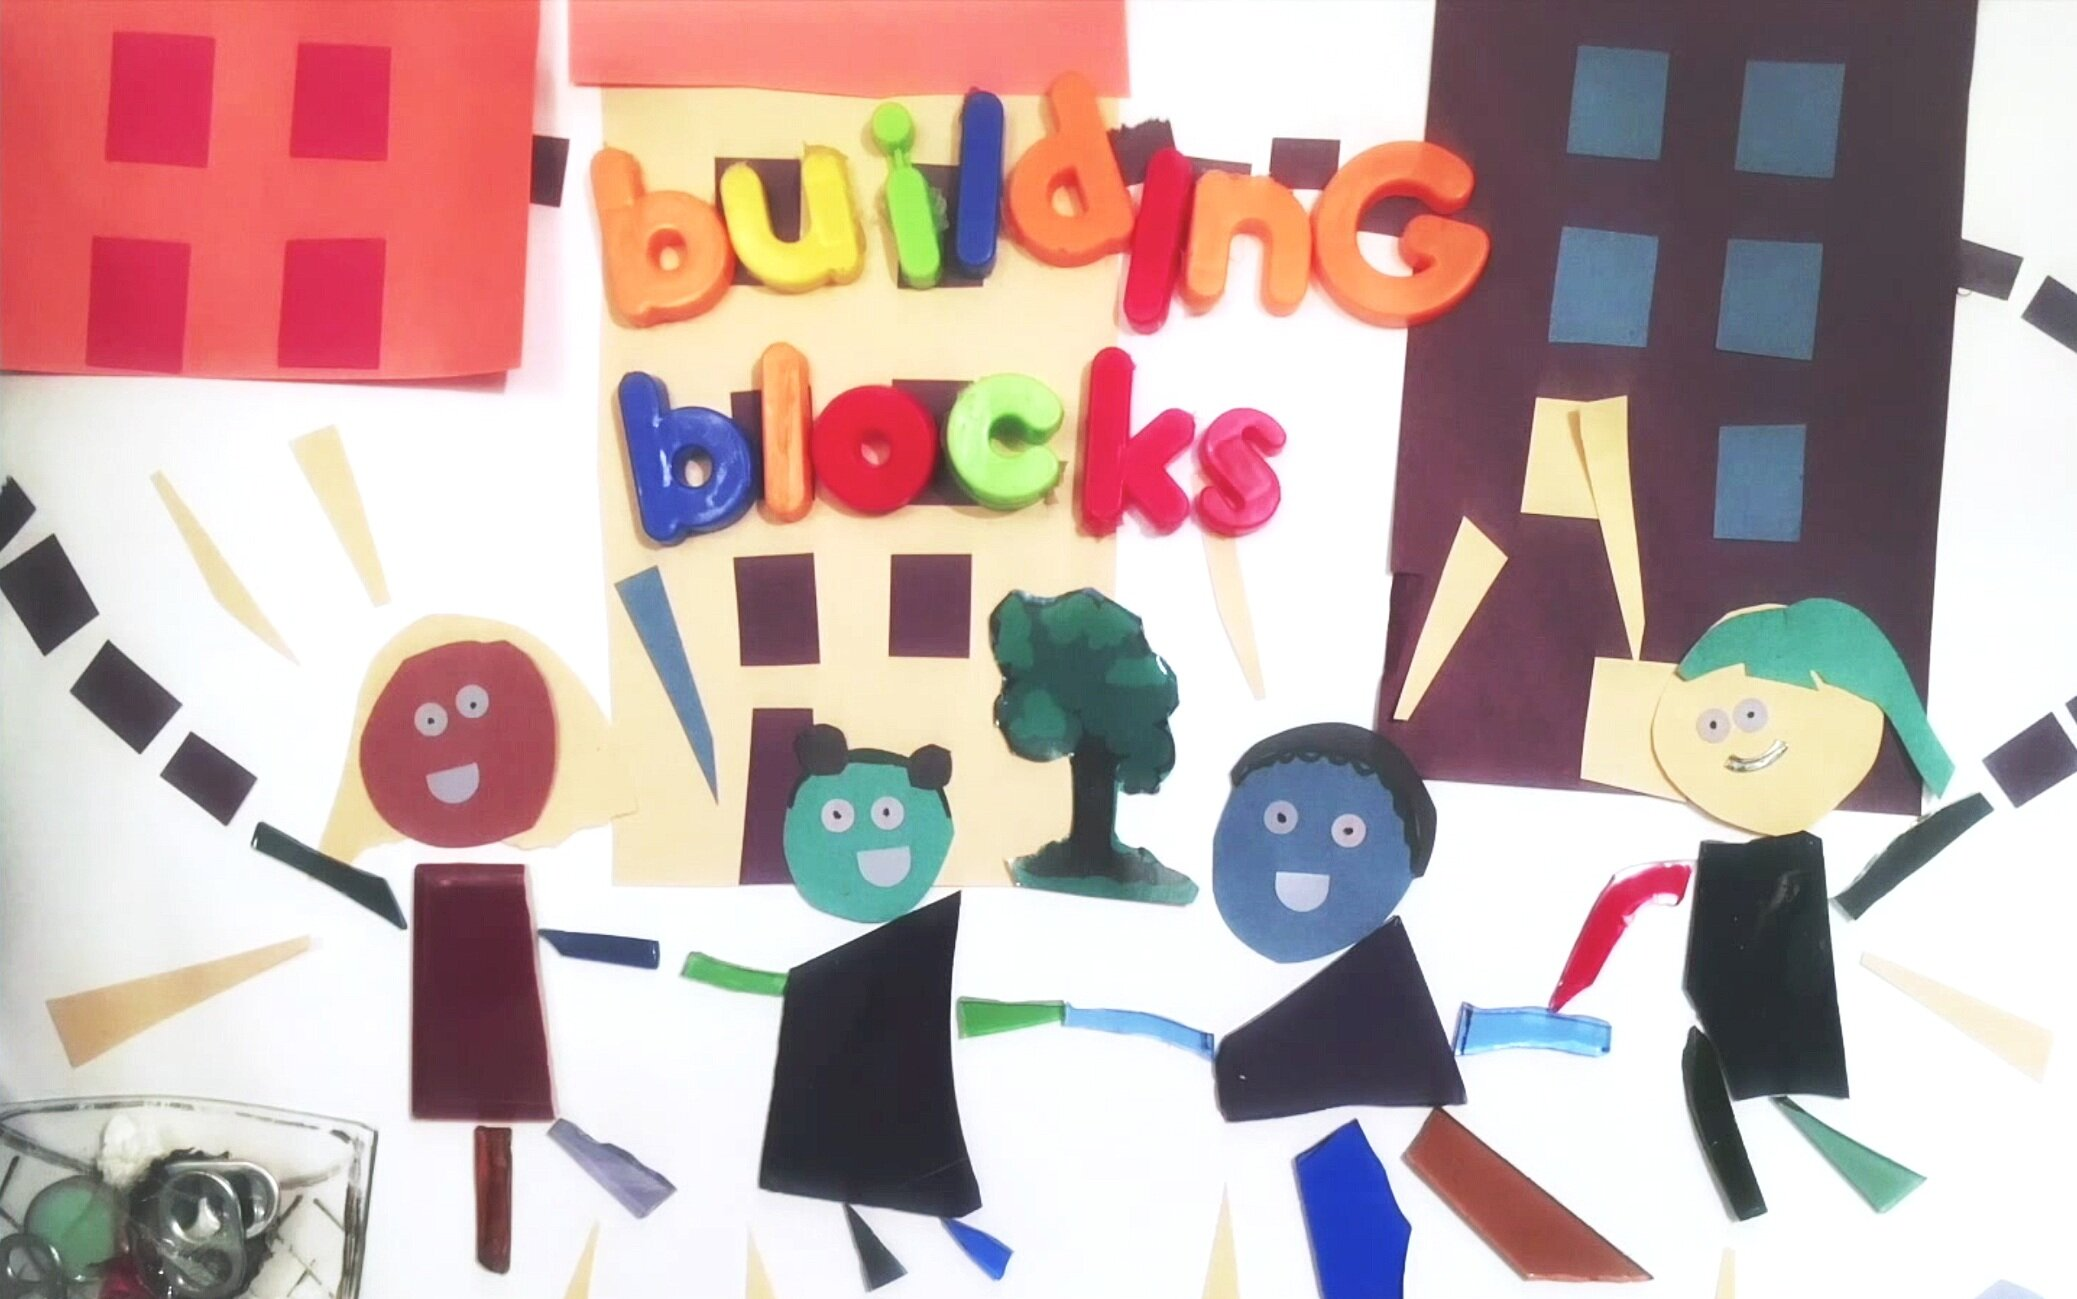 August, 2017 - Building Blocks raised $1,600 through the crowdfunding platform, ioby, from Flatbush neighbors to enact a waste-focused collaborative design project.